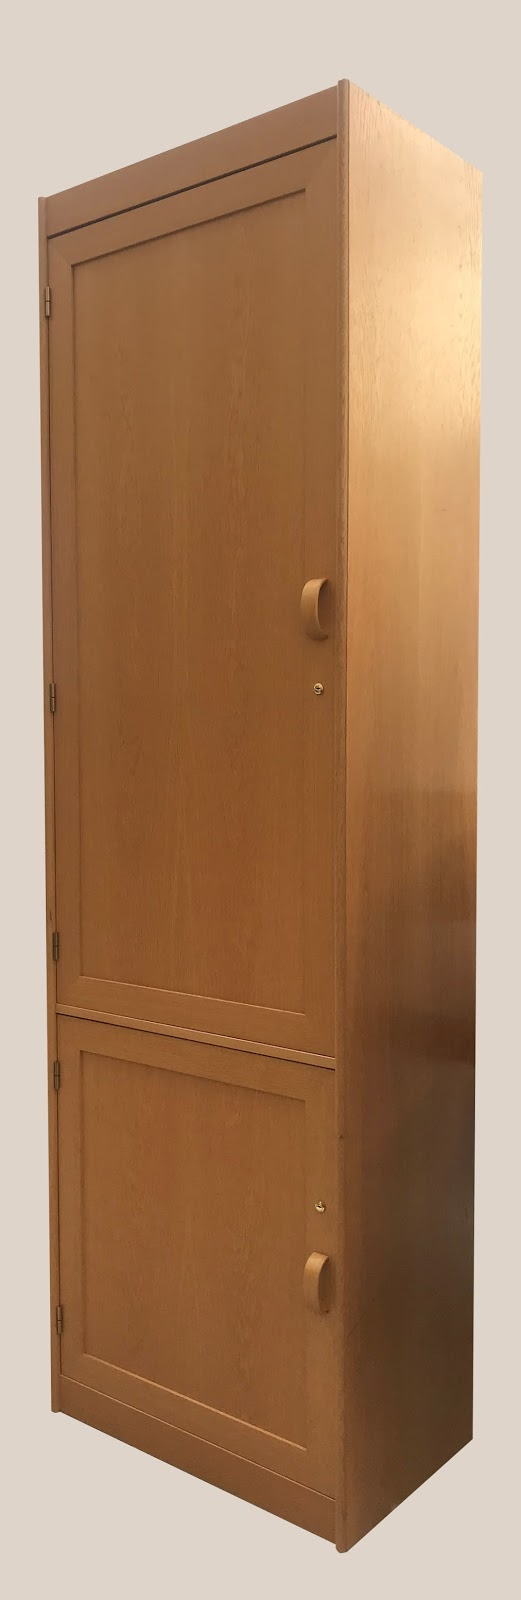 Uhuru Furniture Amp Collectibles Tall Skinny Armoire 165